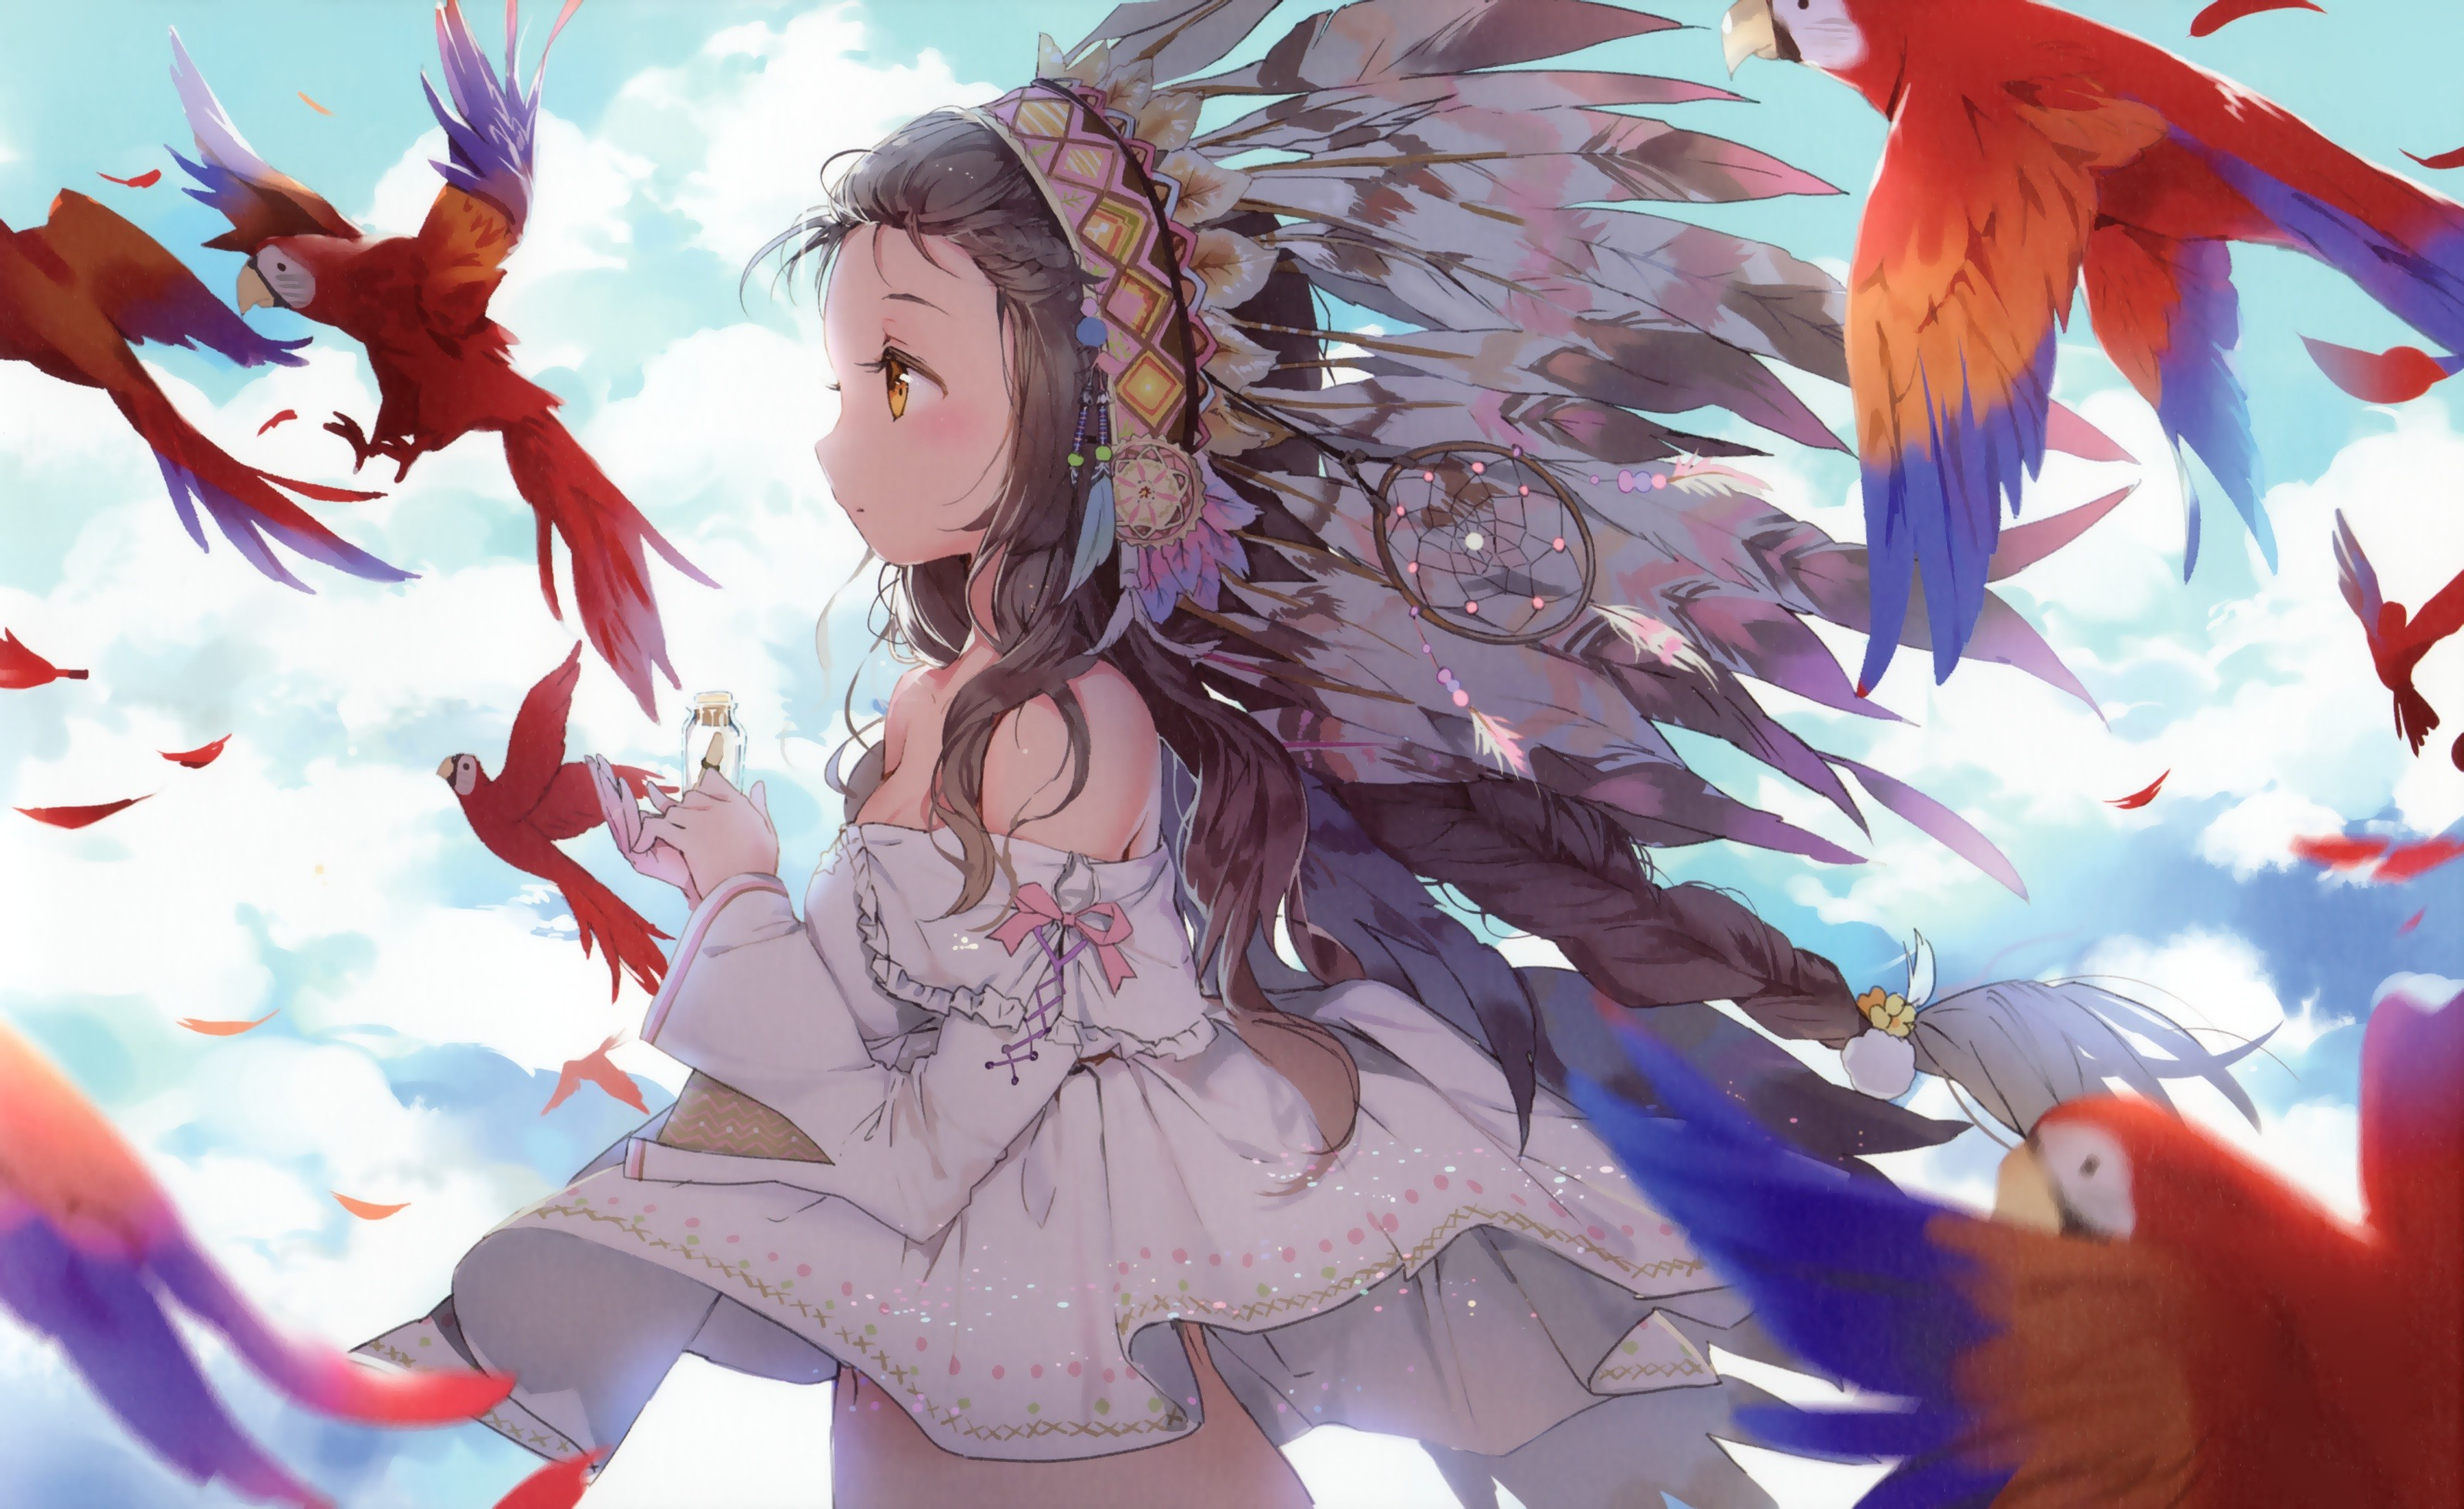 Cute Bow And Arrow Wallpaper Anime Anime Girls Original Characters Animals Birds